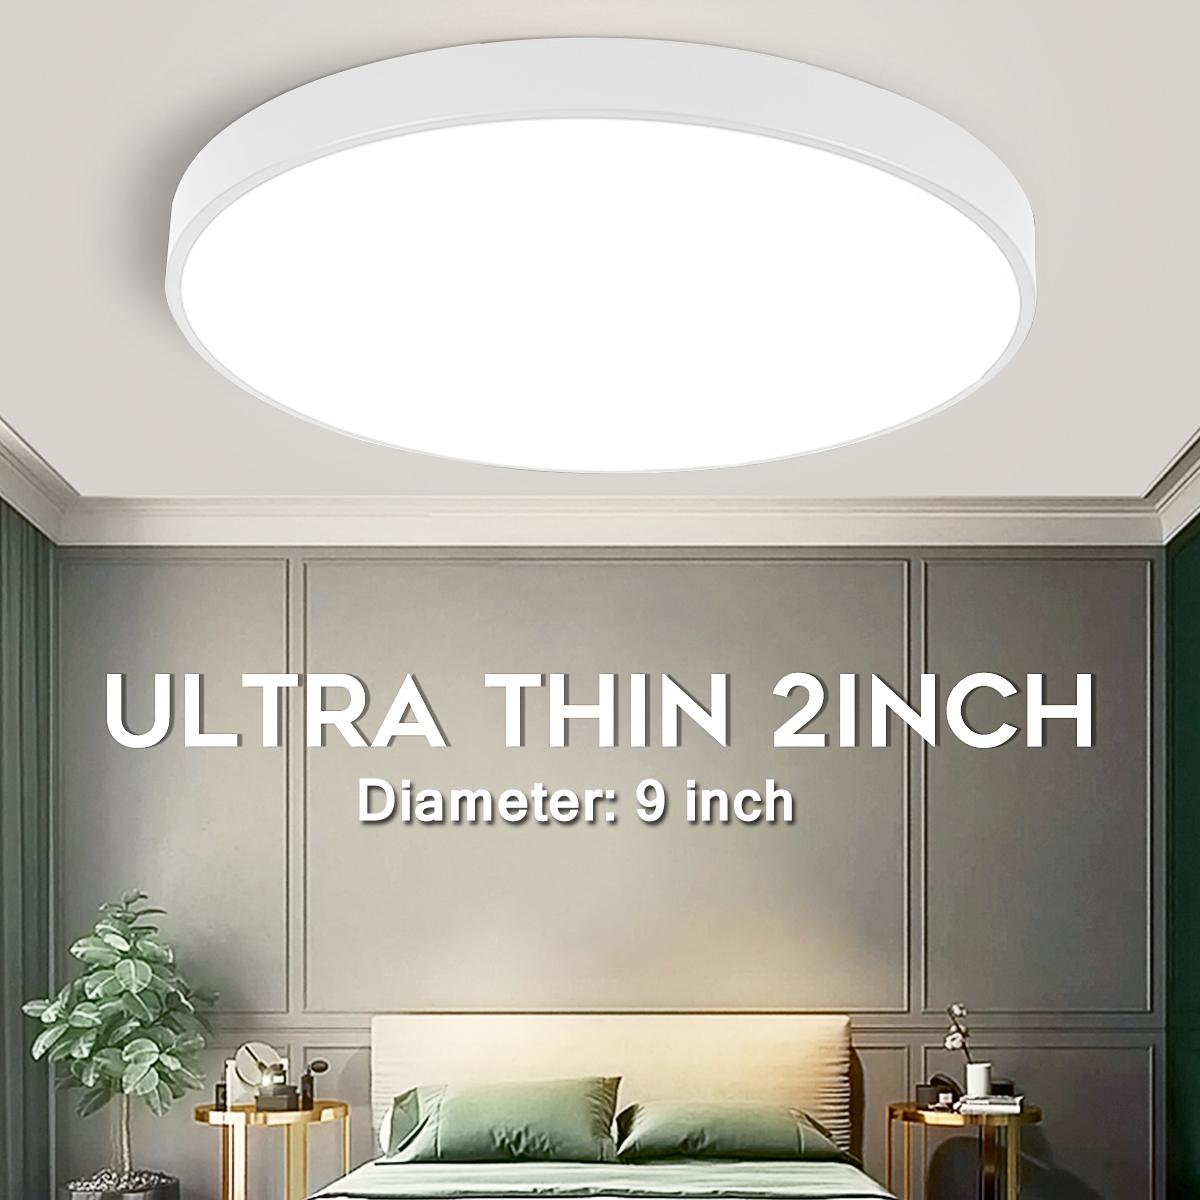 LED Ceiling Mount Light Fixture, 8 inch/ 8 inch Super Bright LED Flush  Mount Ceiling Light for Indoor & Outdoor Home Bedroom Living Room Study